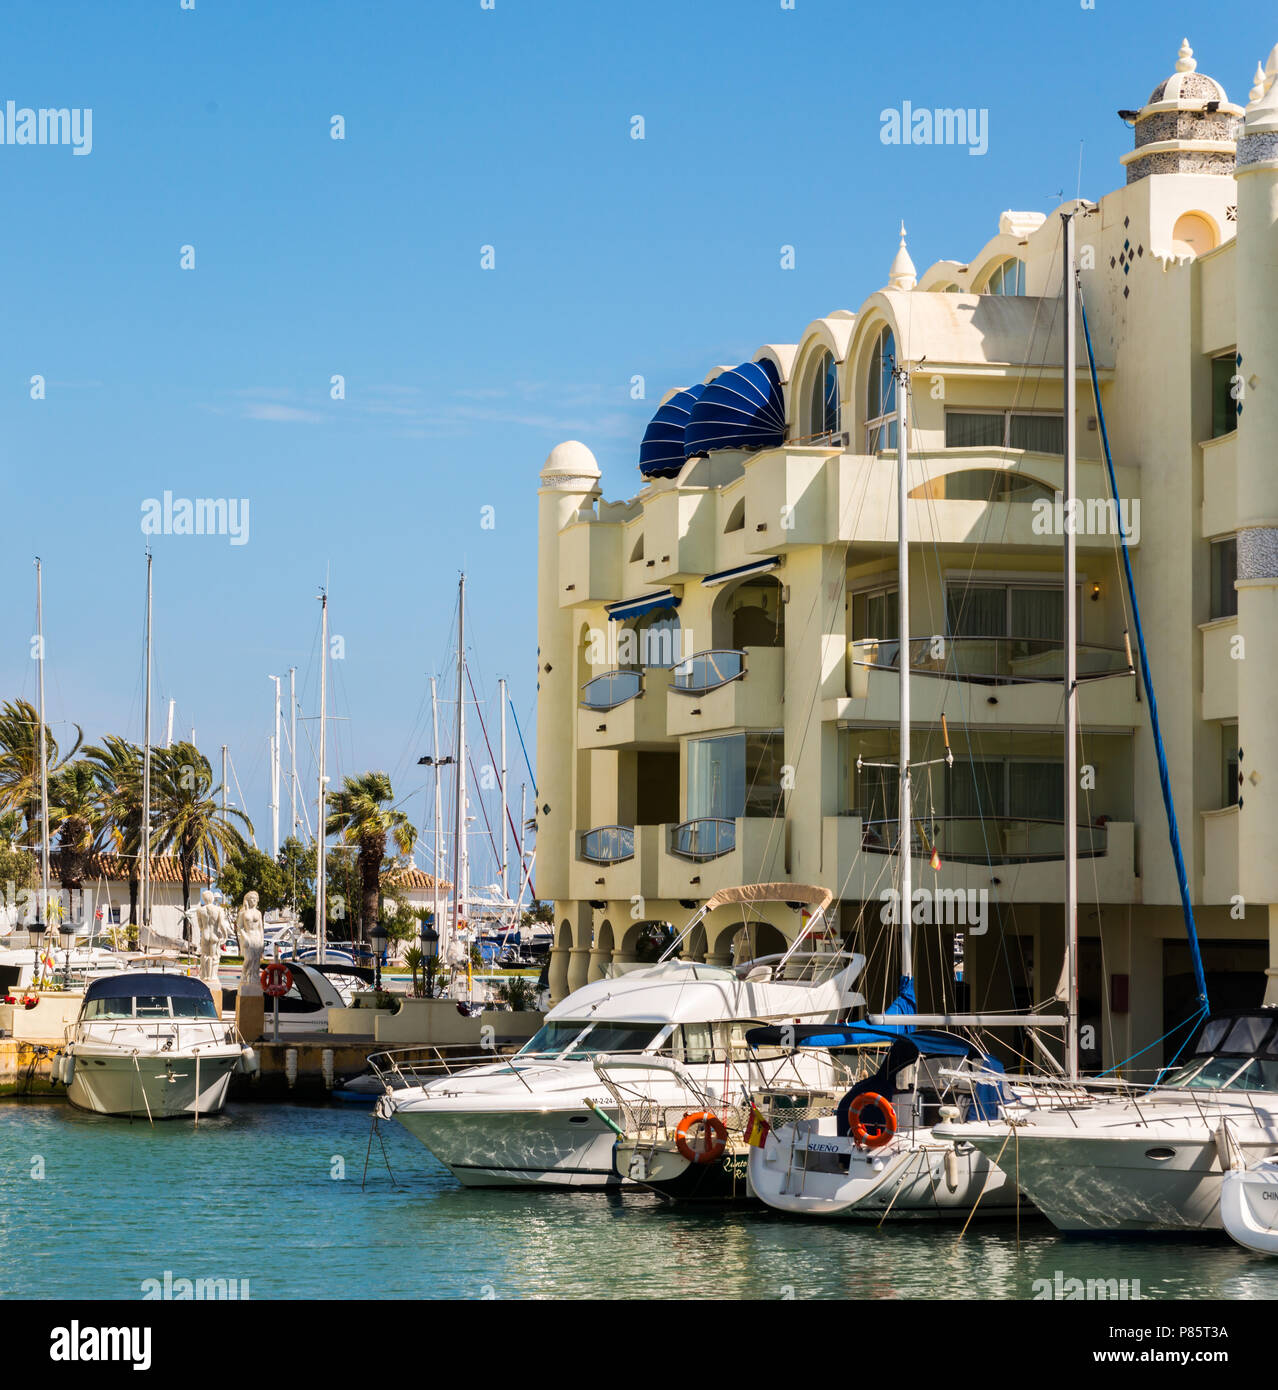 BENALMADENA, SPAIN - MAY 10, 2018 A beautiful marina with luxury yachts and motor boats in the tourist seaside town of Benalmadena Stock Photo